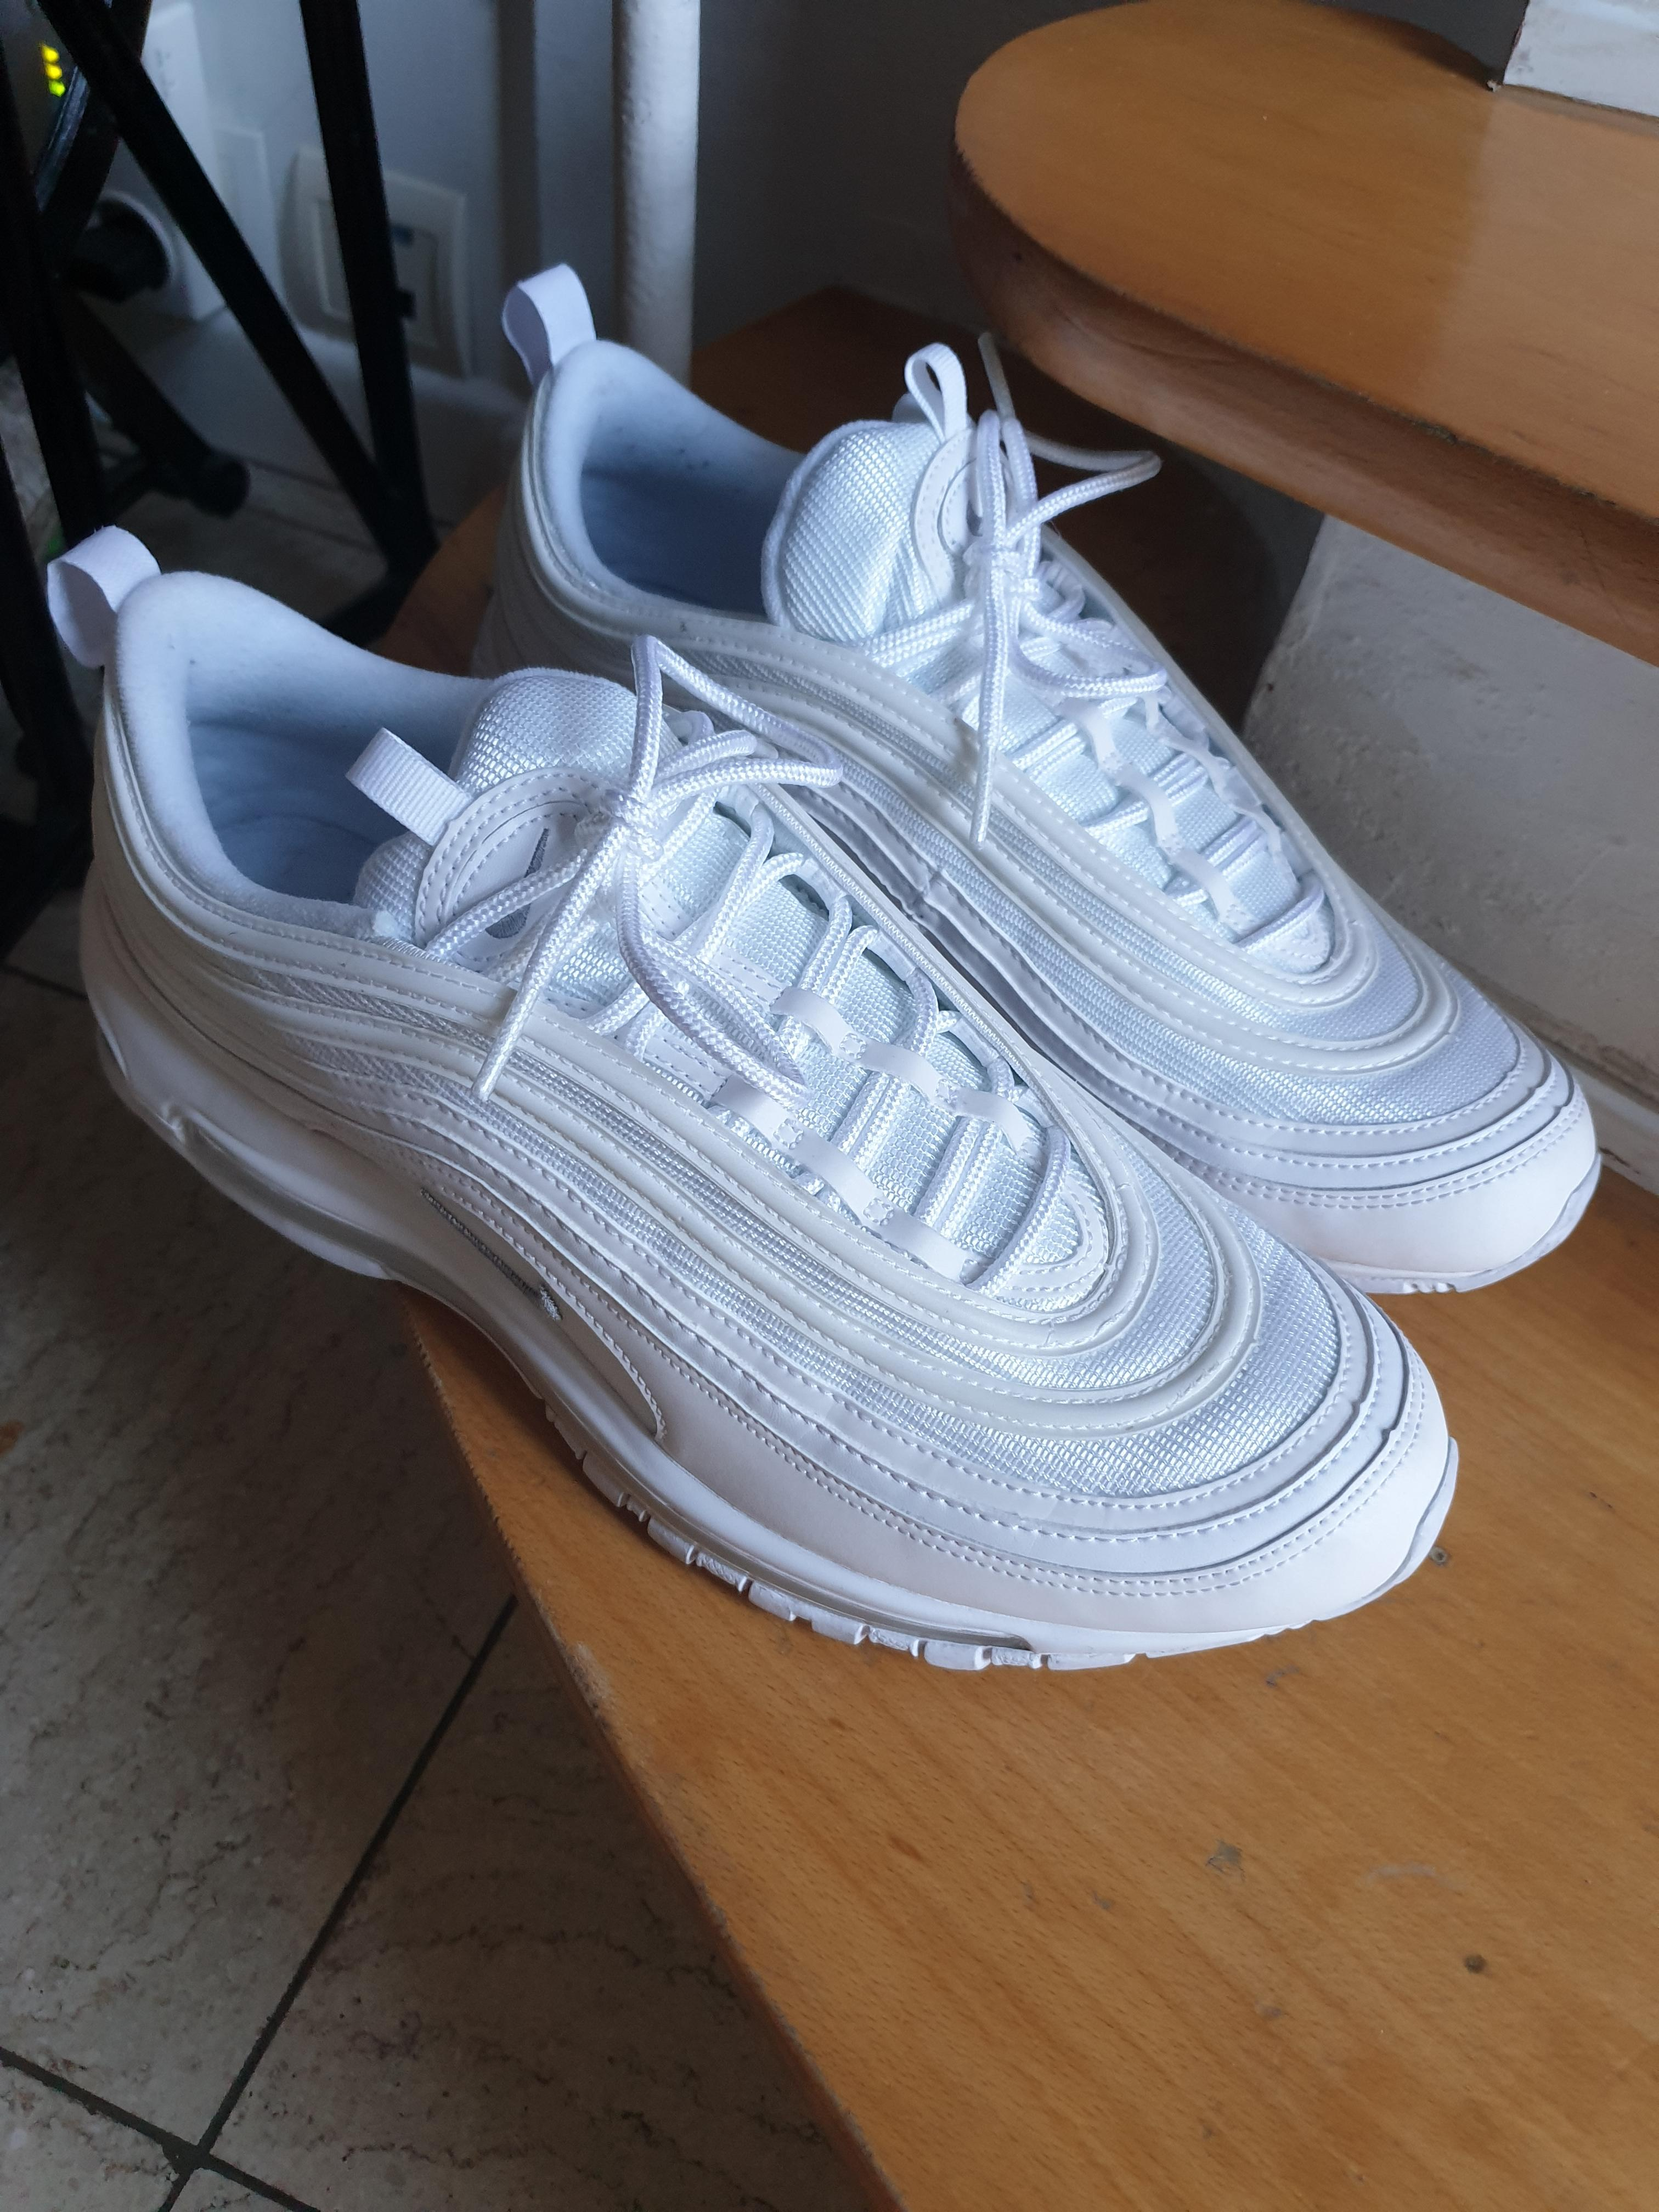 How To Style Air Max 97 : style, Would, These, Summit, White, Believe, That's, Their, Name)?